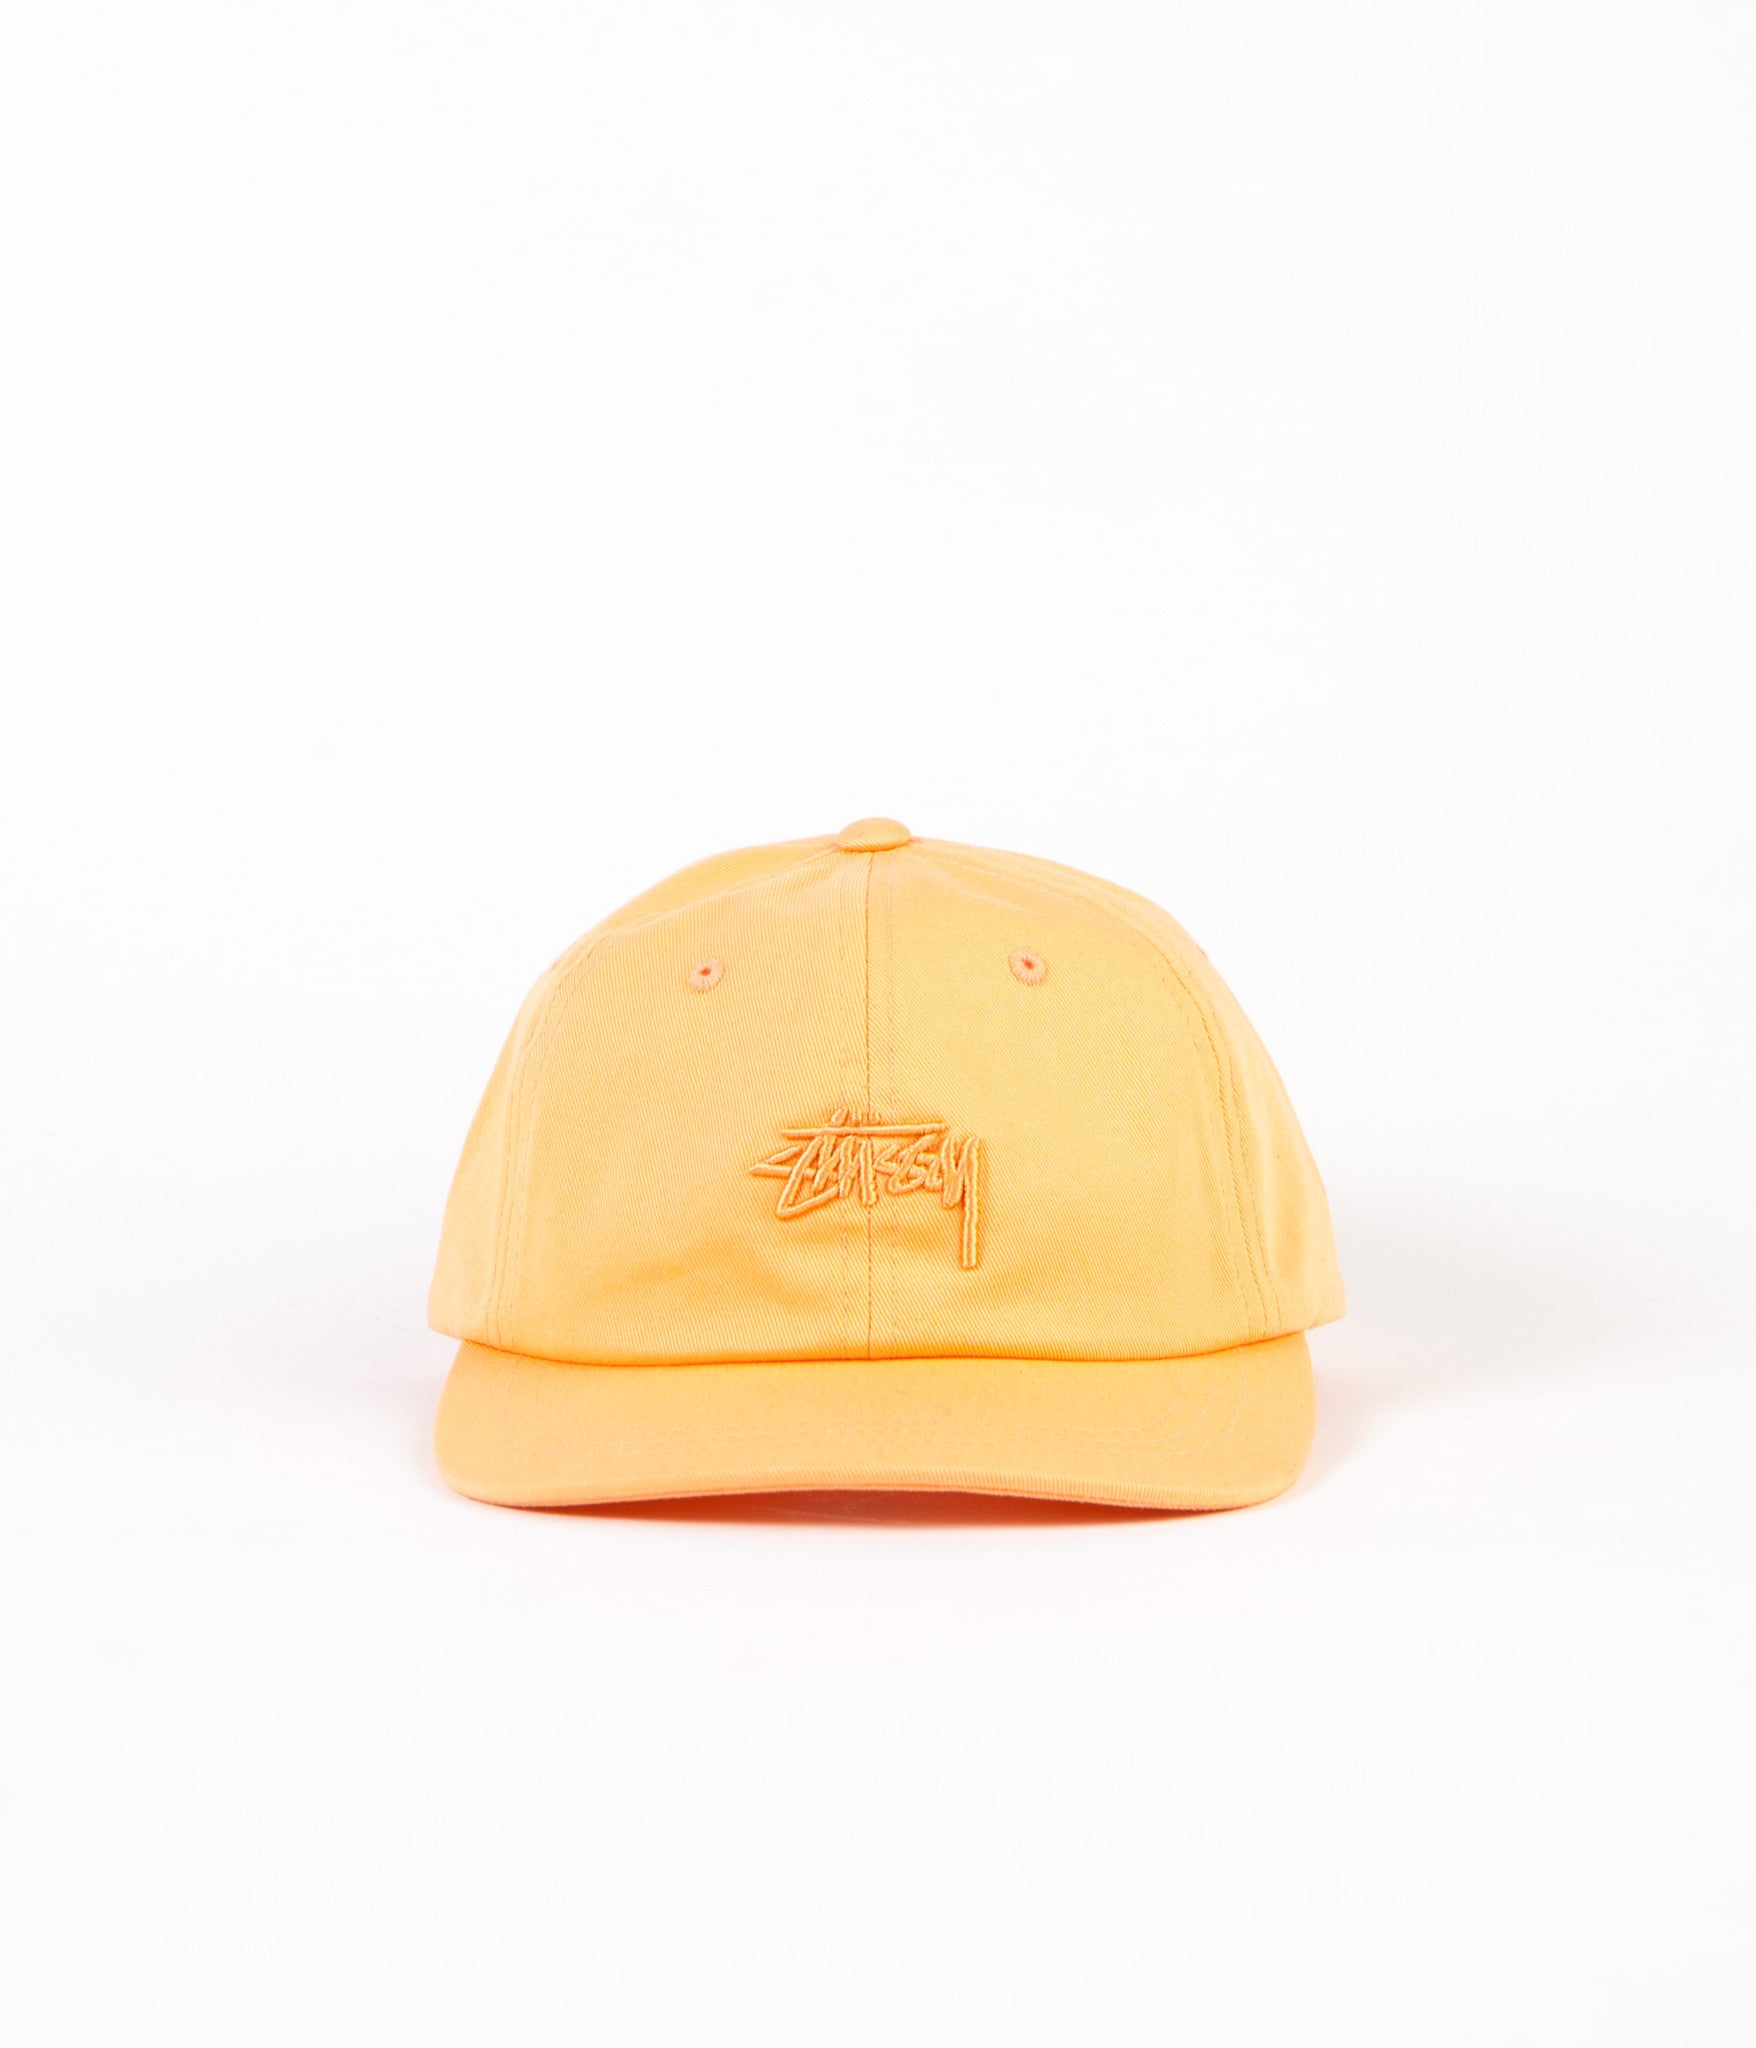 Stussy Tonal Stock Low Cap - Pink